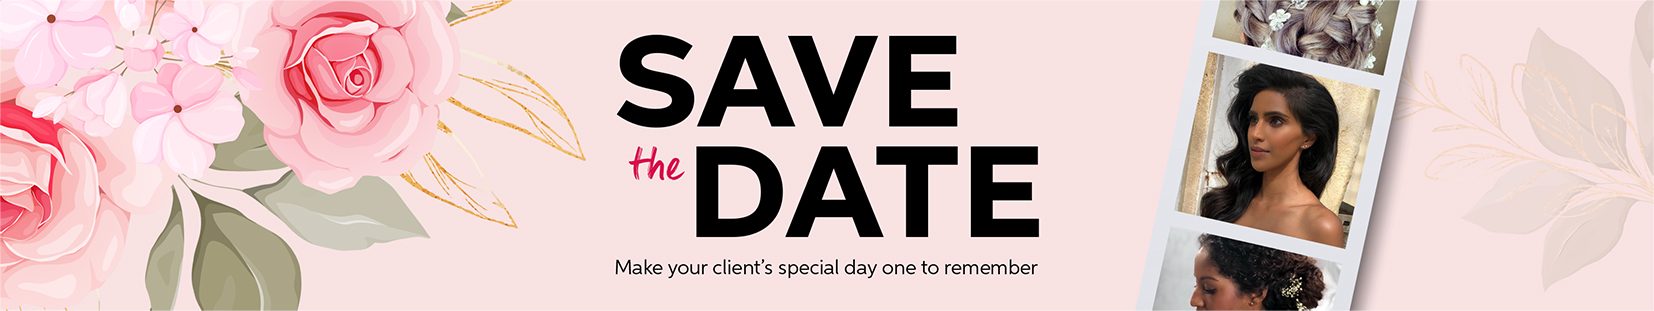 Wedding Hair: Save the Date. Make your client's special day one to remember